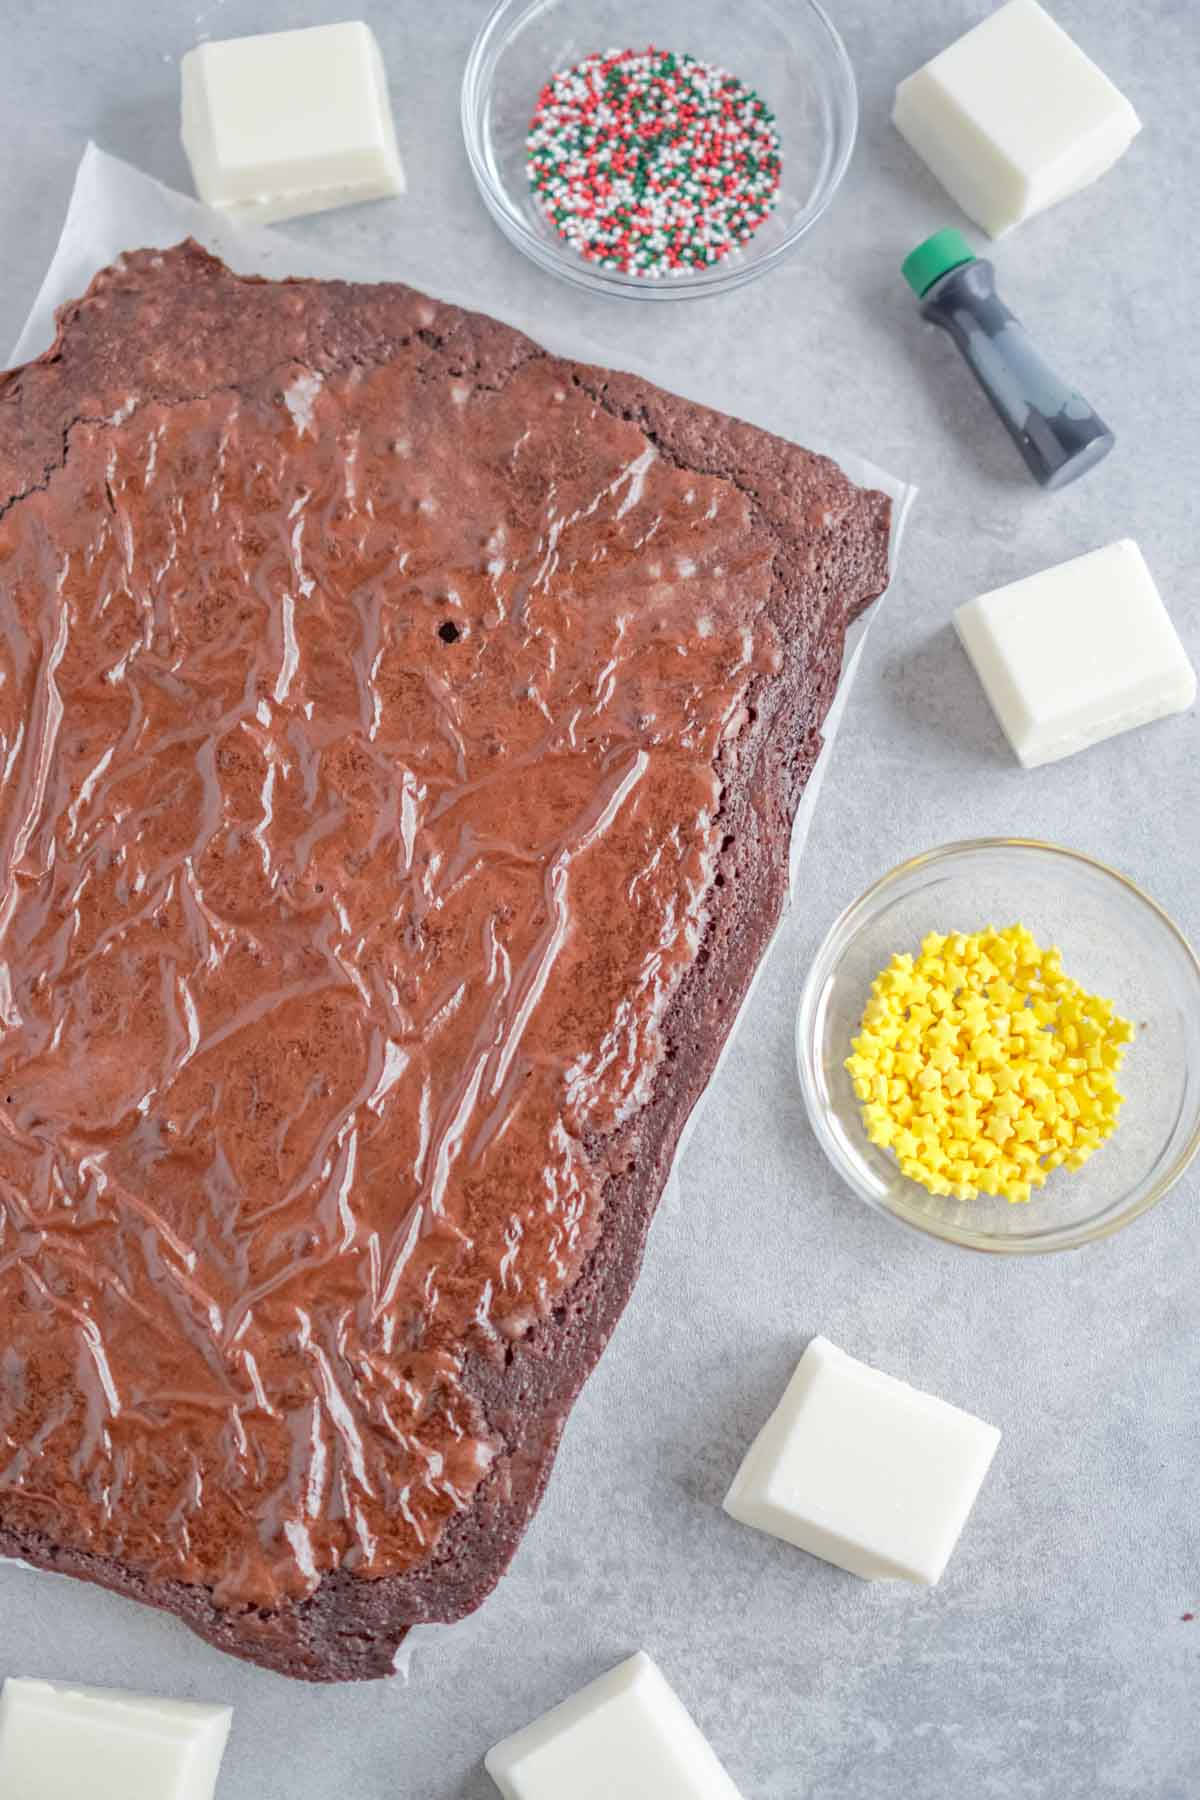 Brownies surrounded by white chocolate and sprinkles